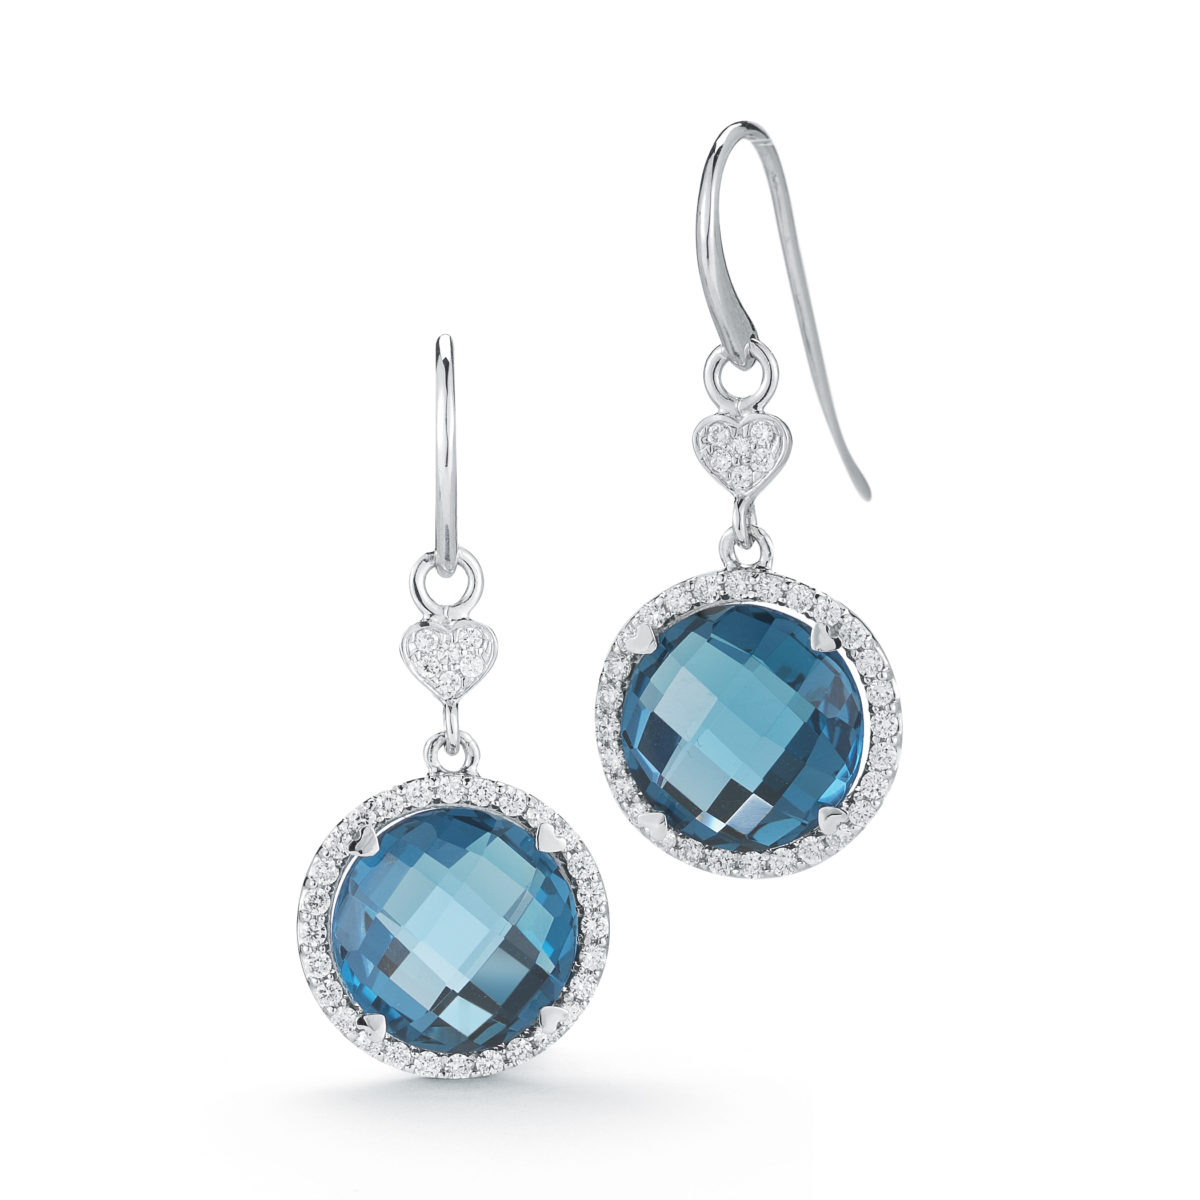 stud studs jewelry blue earrings mcdonough grace sloane product bt kiki topaz jewellery